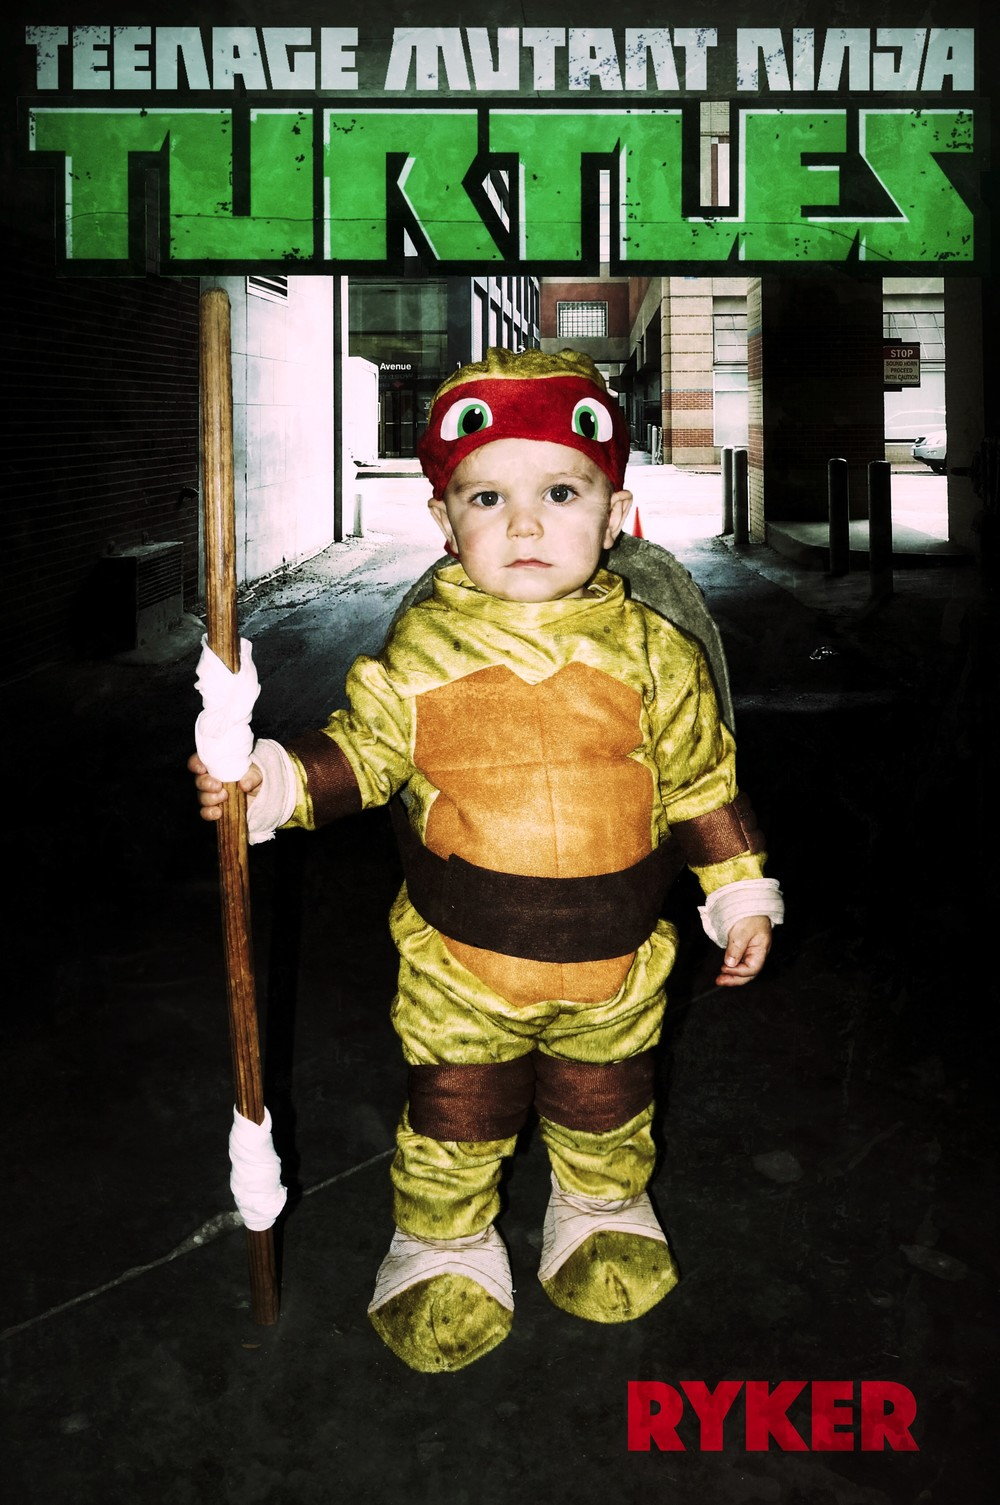 Ryker as a Ninja Turtle